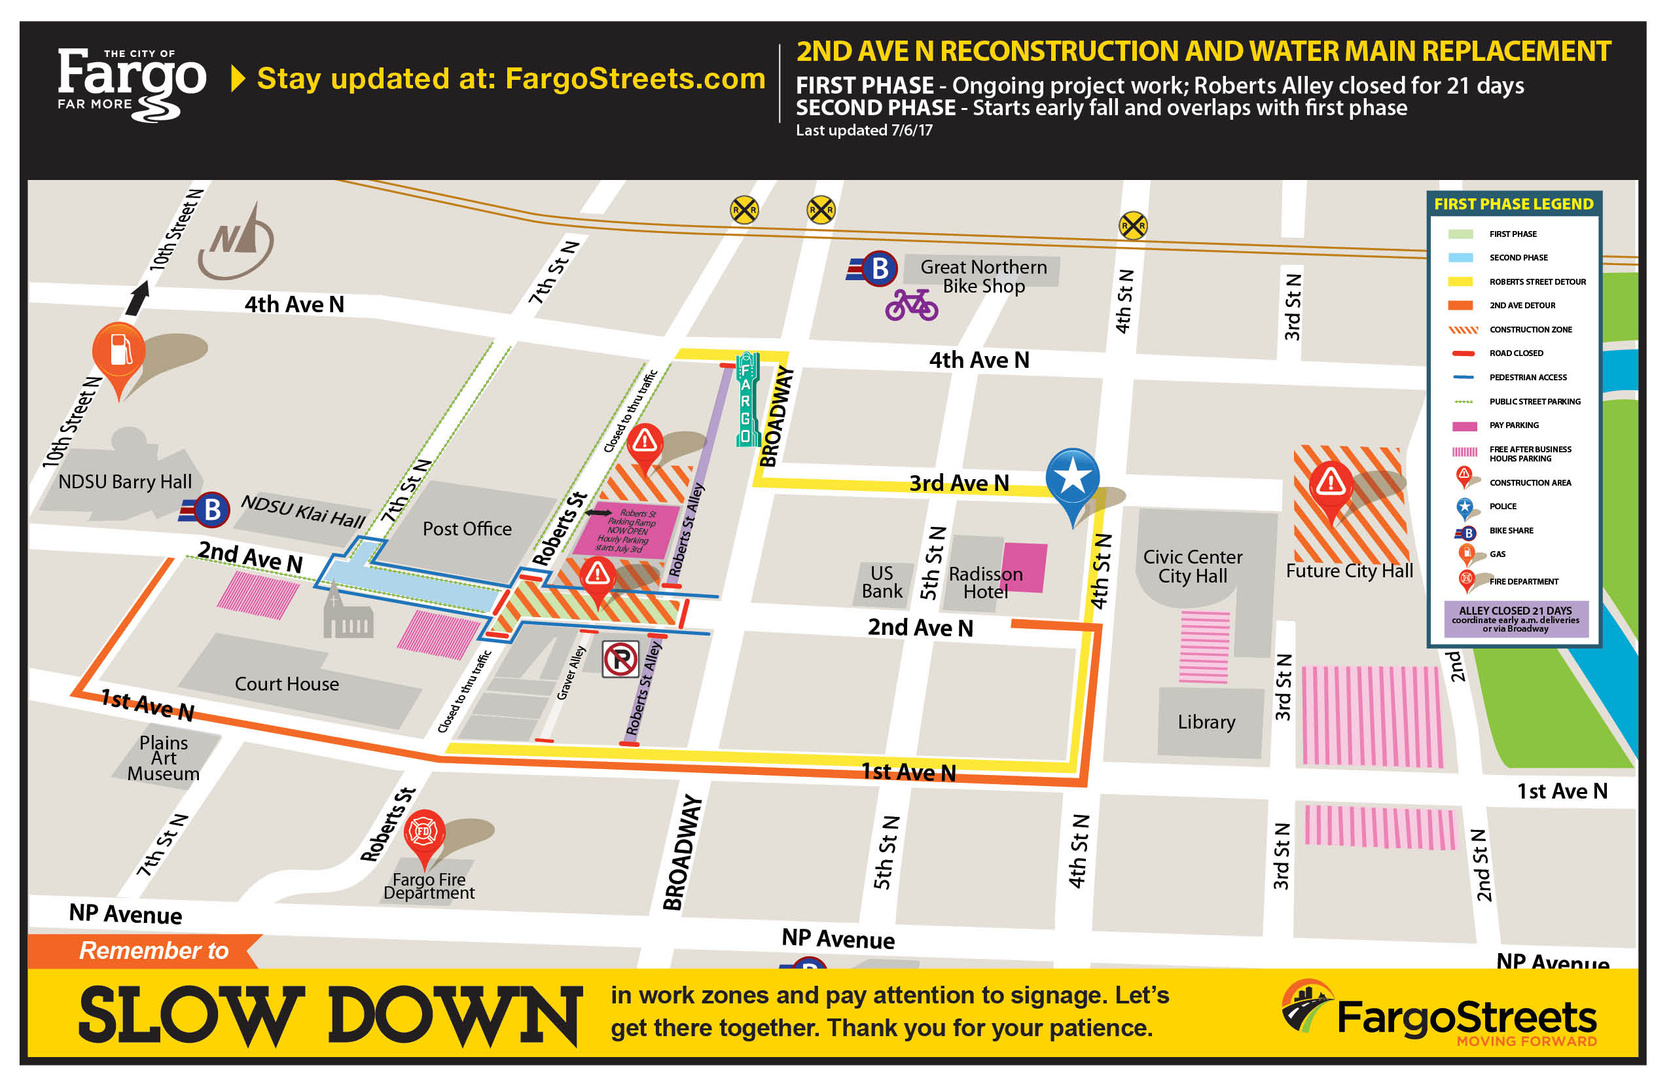 Project: 2nd Avenue N Reconstruction: Roberts Alley to 7th St.